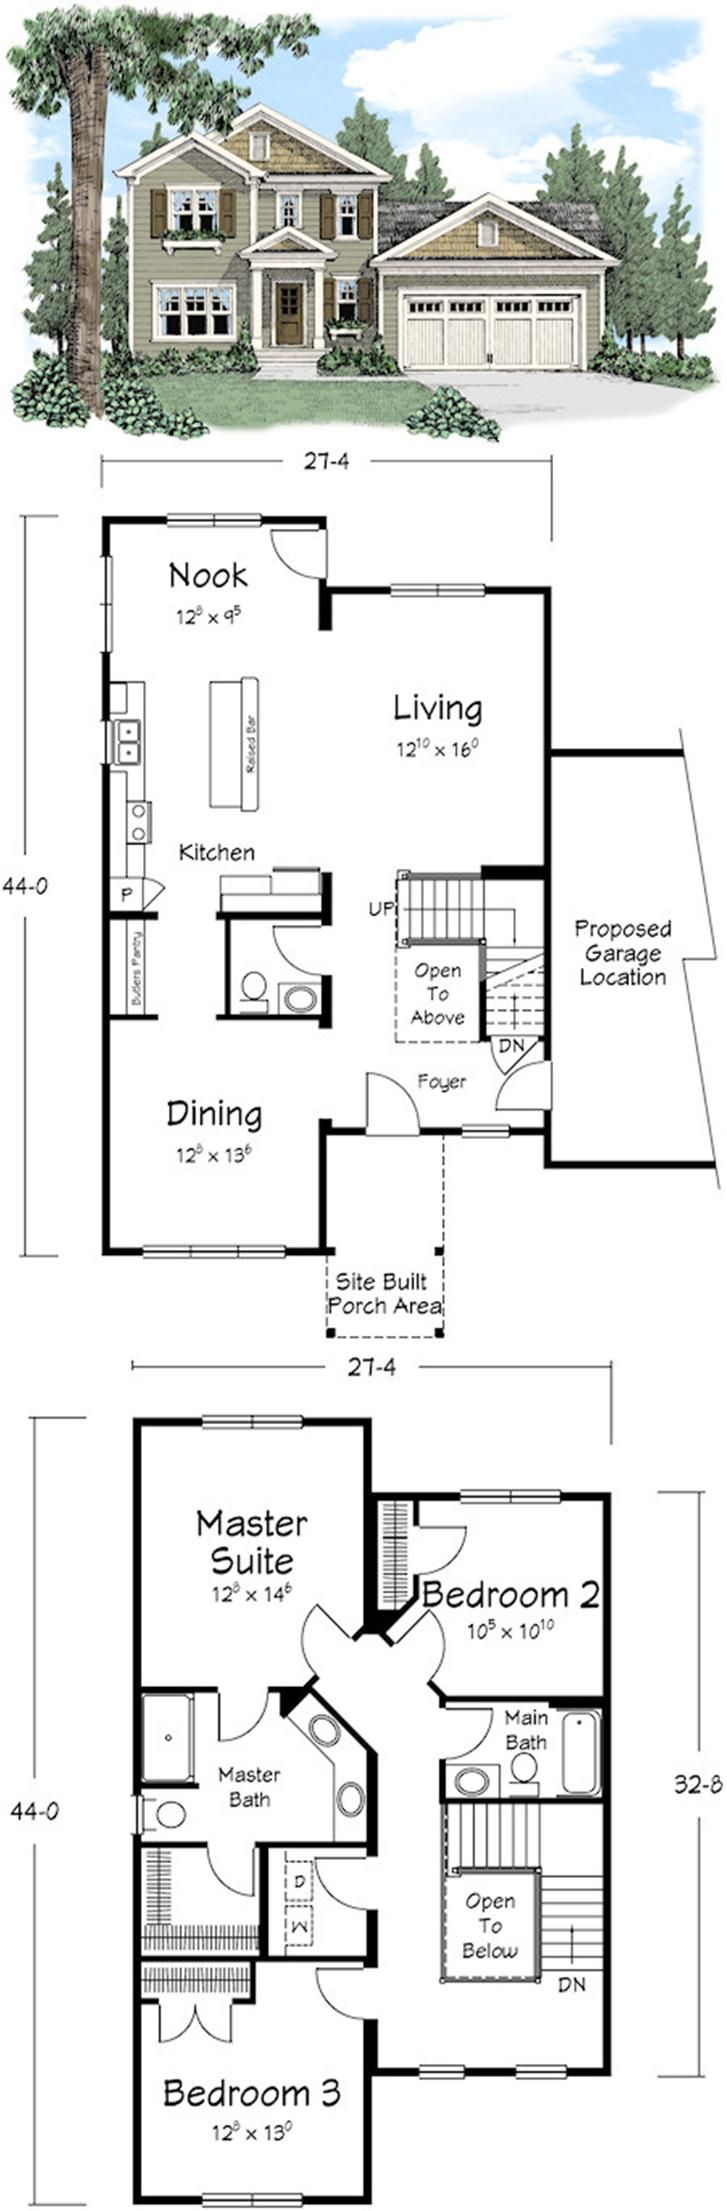 2 Story House Floor Plans 47 best two story house plans images on pinterest | country house